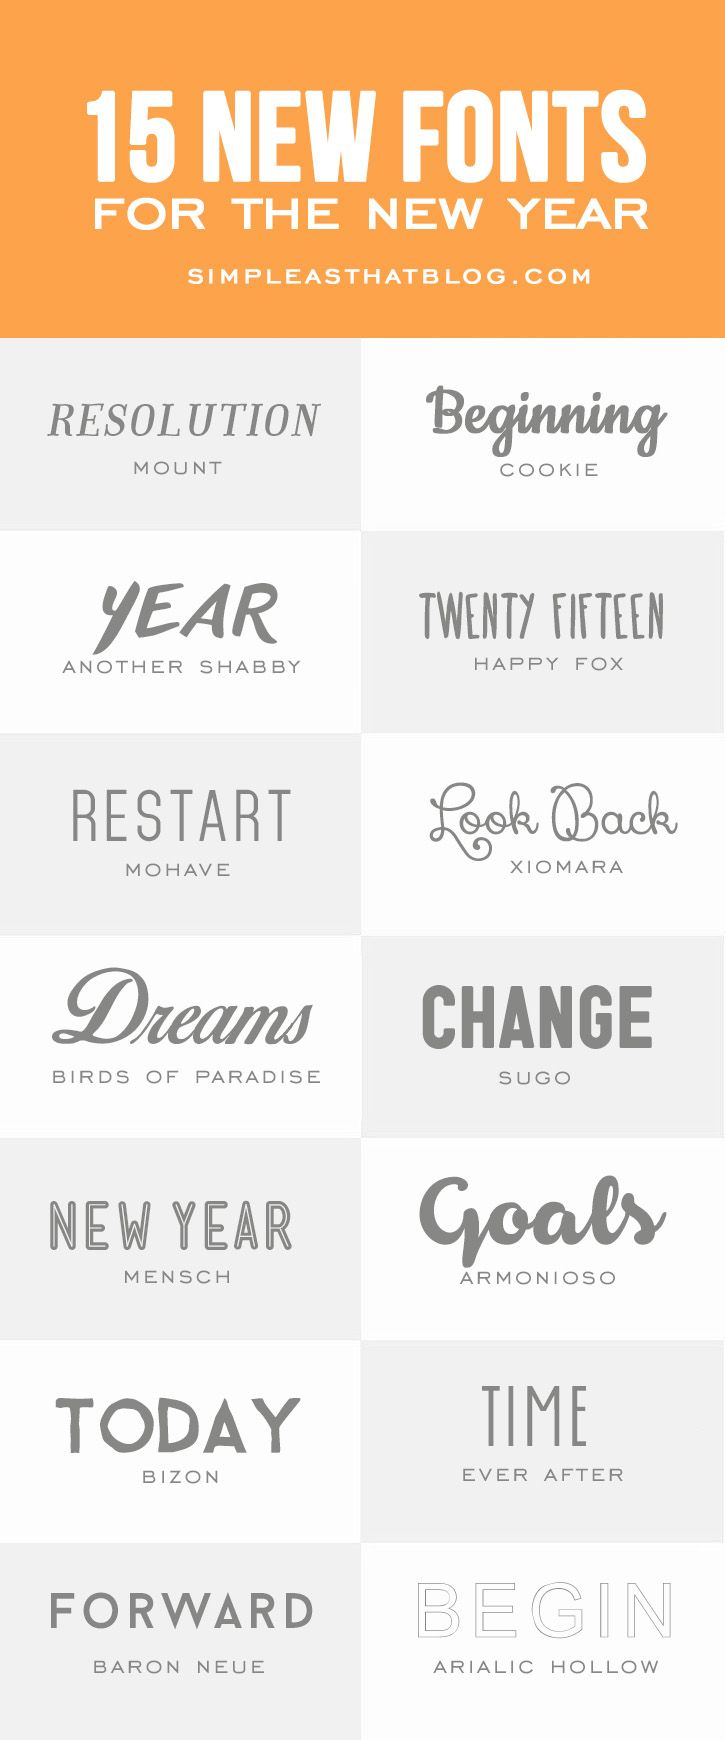 15 New Fonts to try in the New Year - simple as that